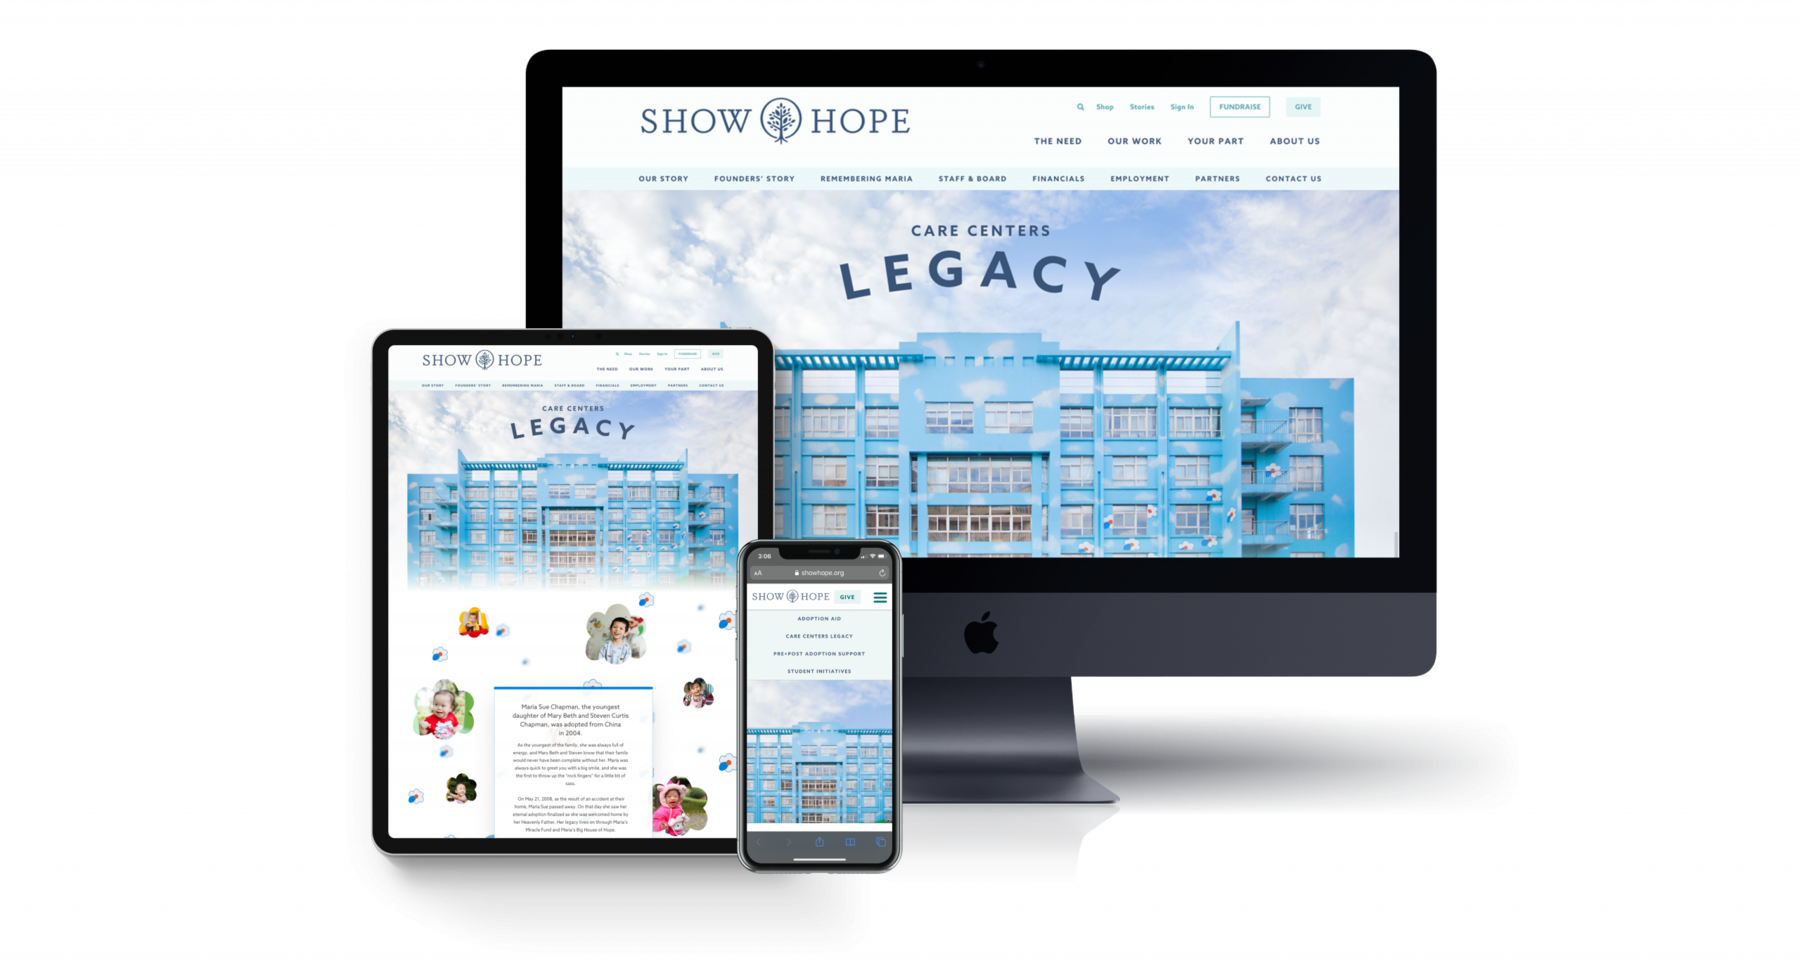 An iPad, an iPhone, and a desktop screen that show the Show Hope website, which includes a Care Center building, photos of the children who live there, and text